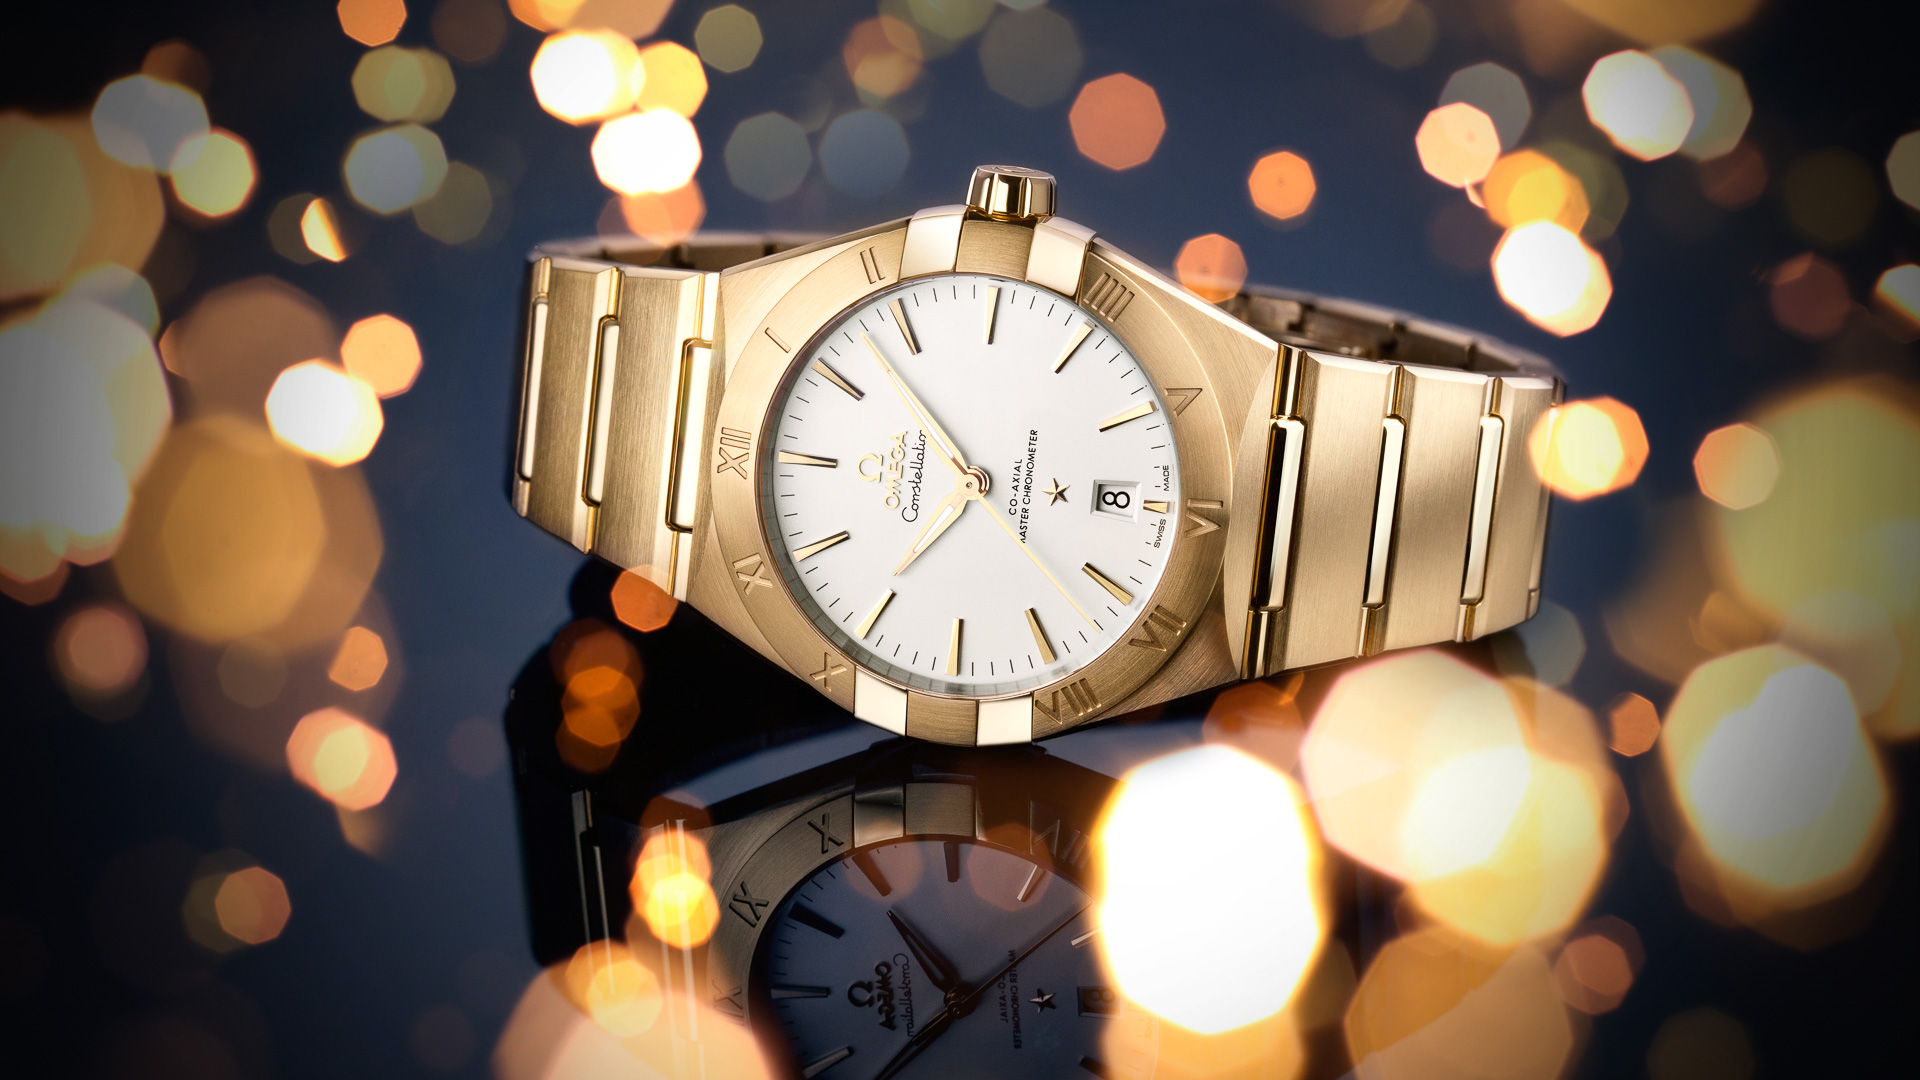 A new Omega Constellation befitting of the new generation